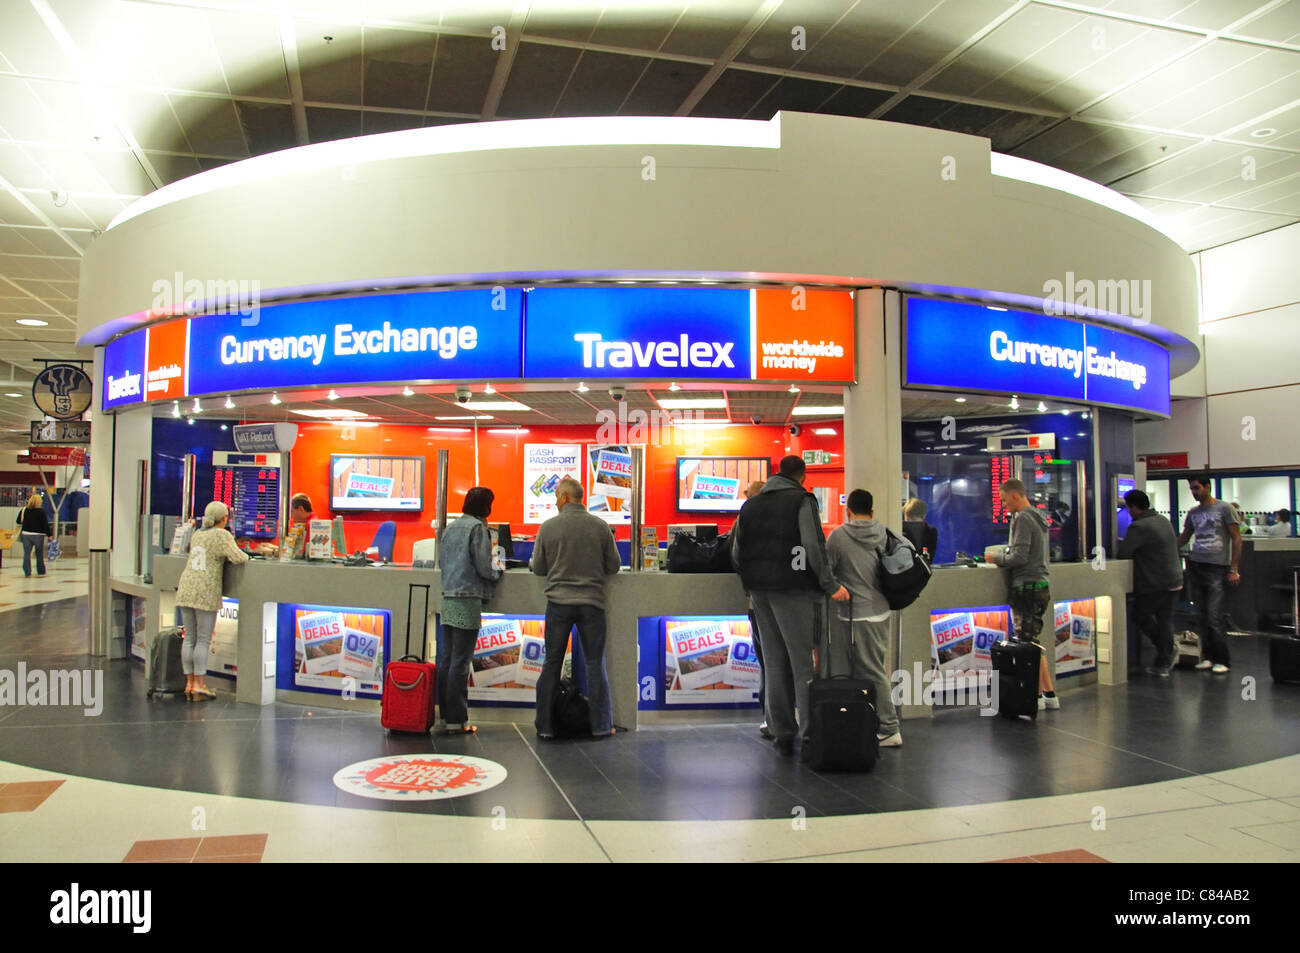 Travelex Currency Exchange in departures, North Terminal, London Gatwick Airport, Crawley, West Sussex, England, Stock Photo